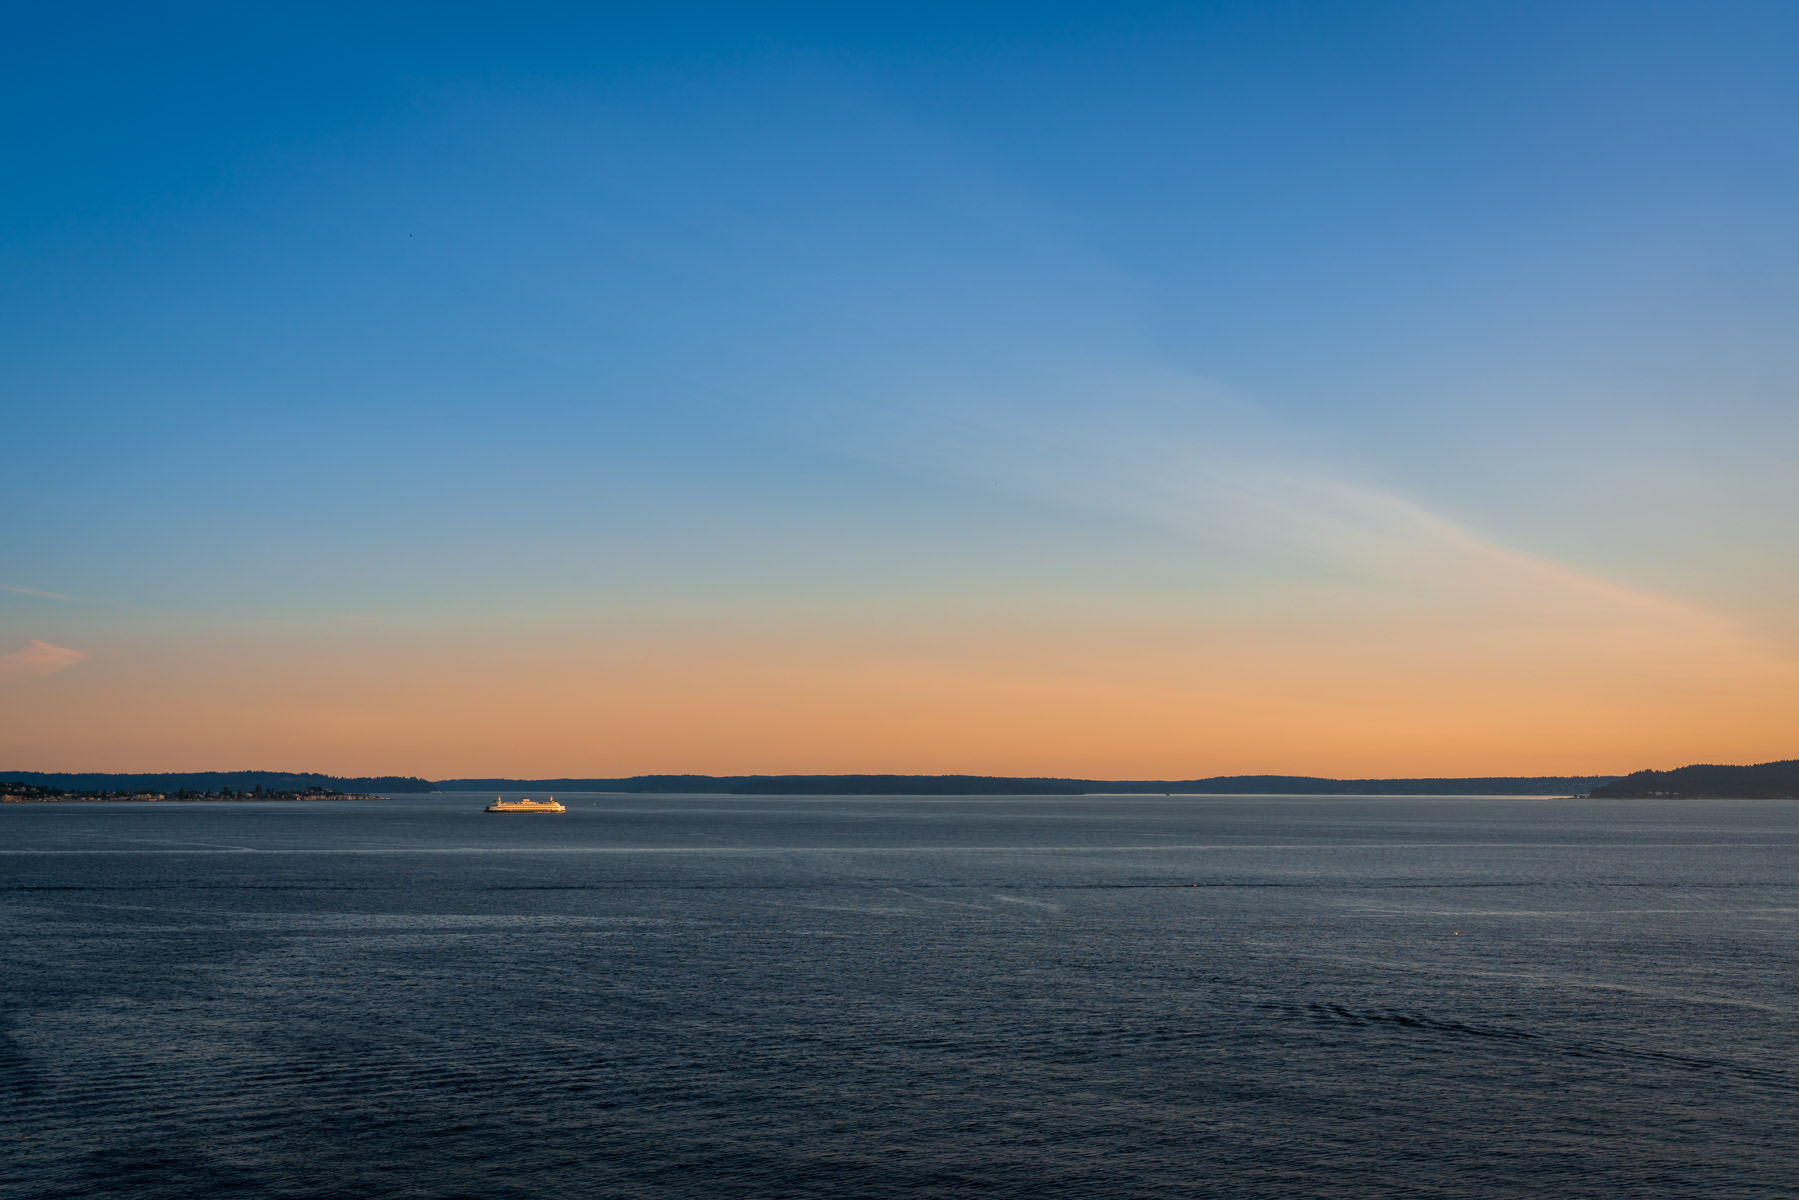 The sun sets on the Seattle-Bainbridge ferry as it crosses Puget Sound.